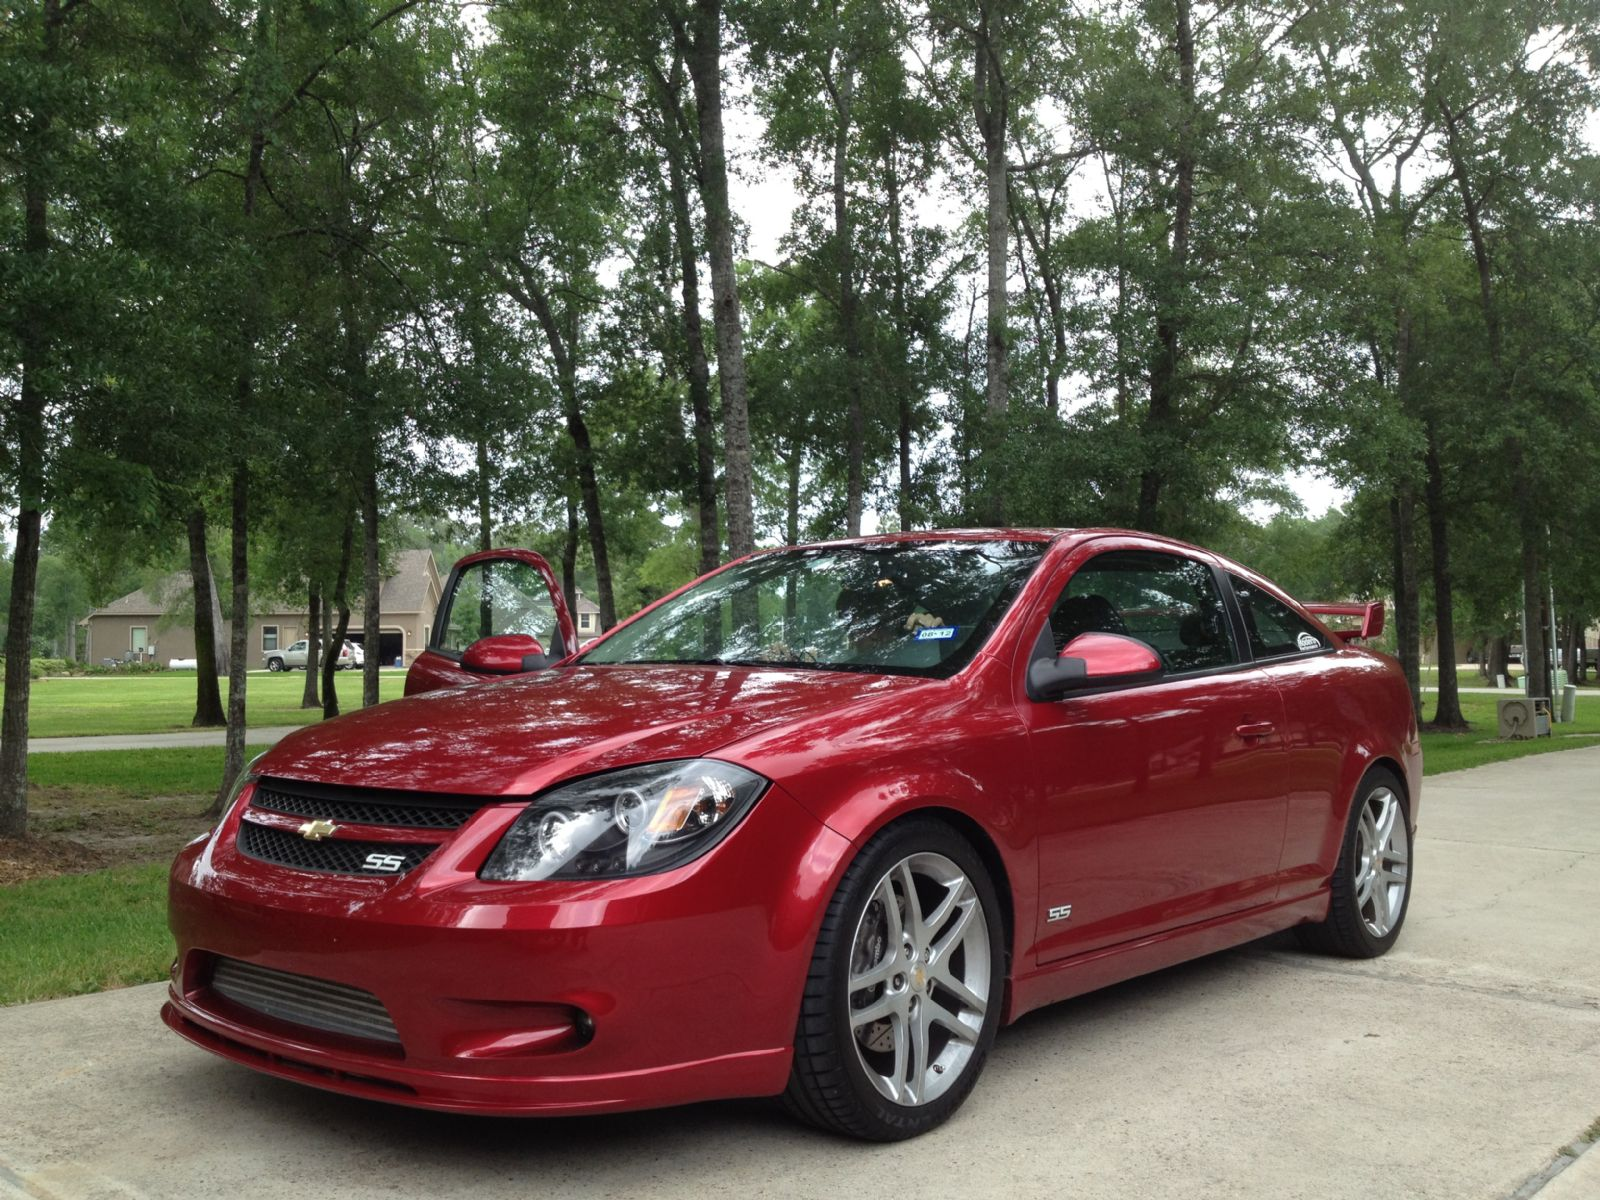 2010 Chevrolet 568 WHP [Cobalt] SS Turbocharged For Sale | Sugar ...